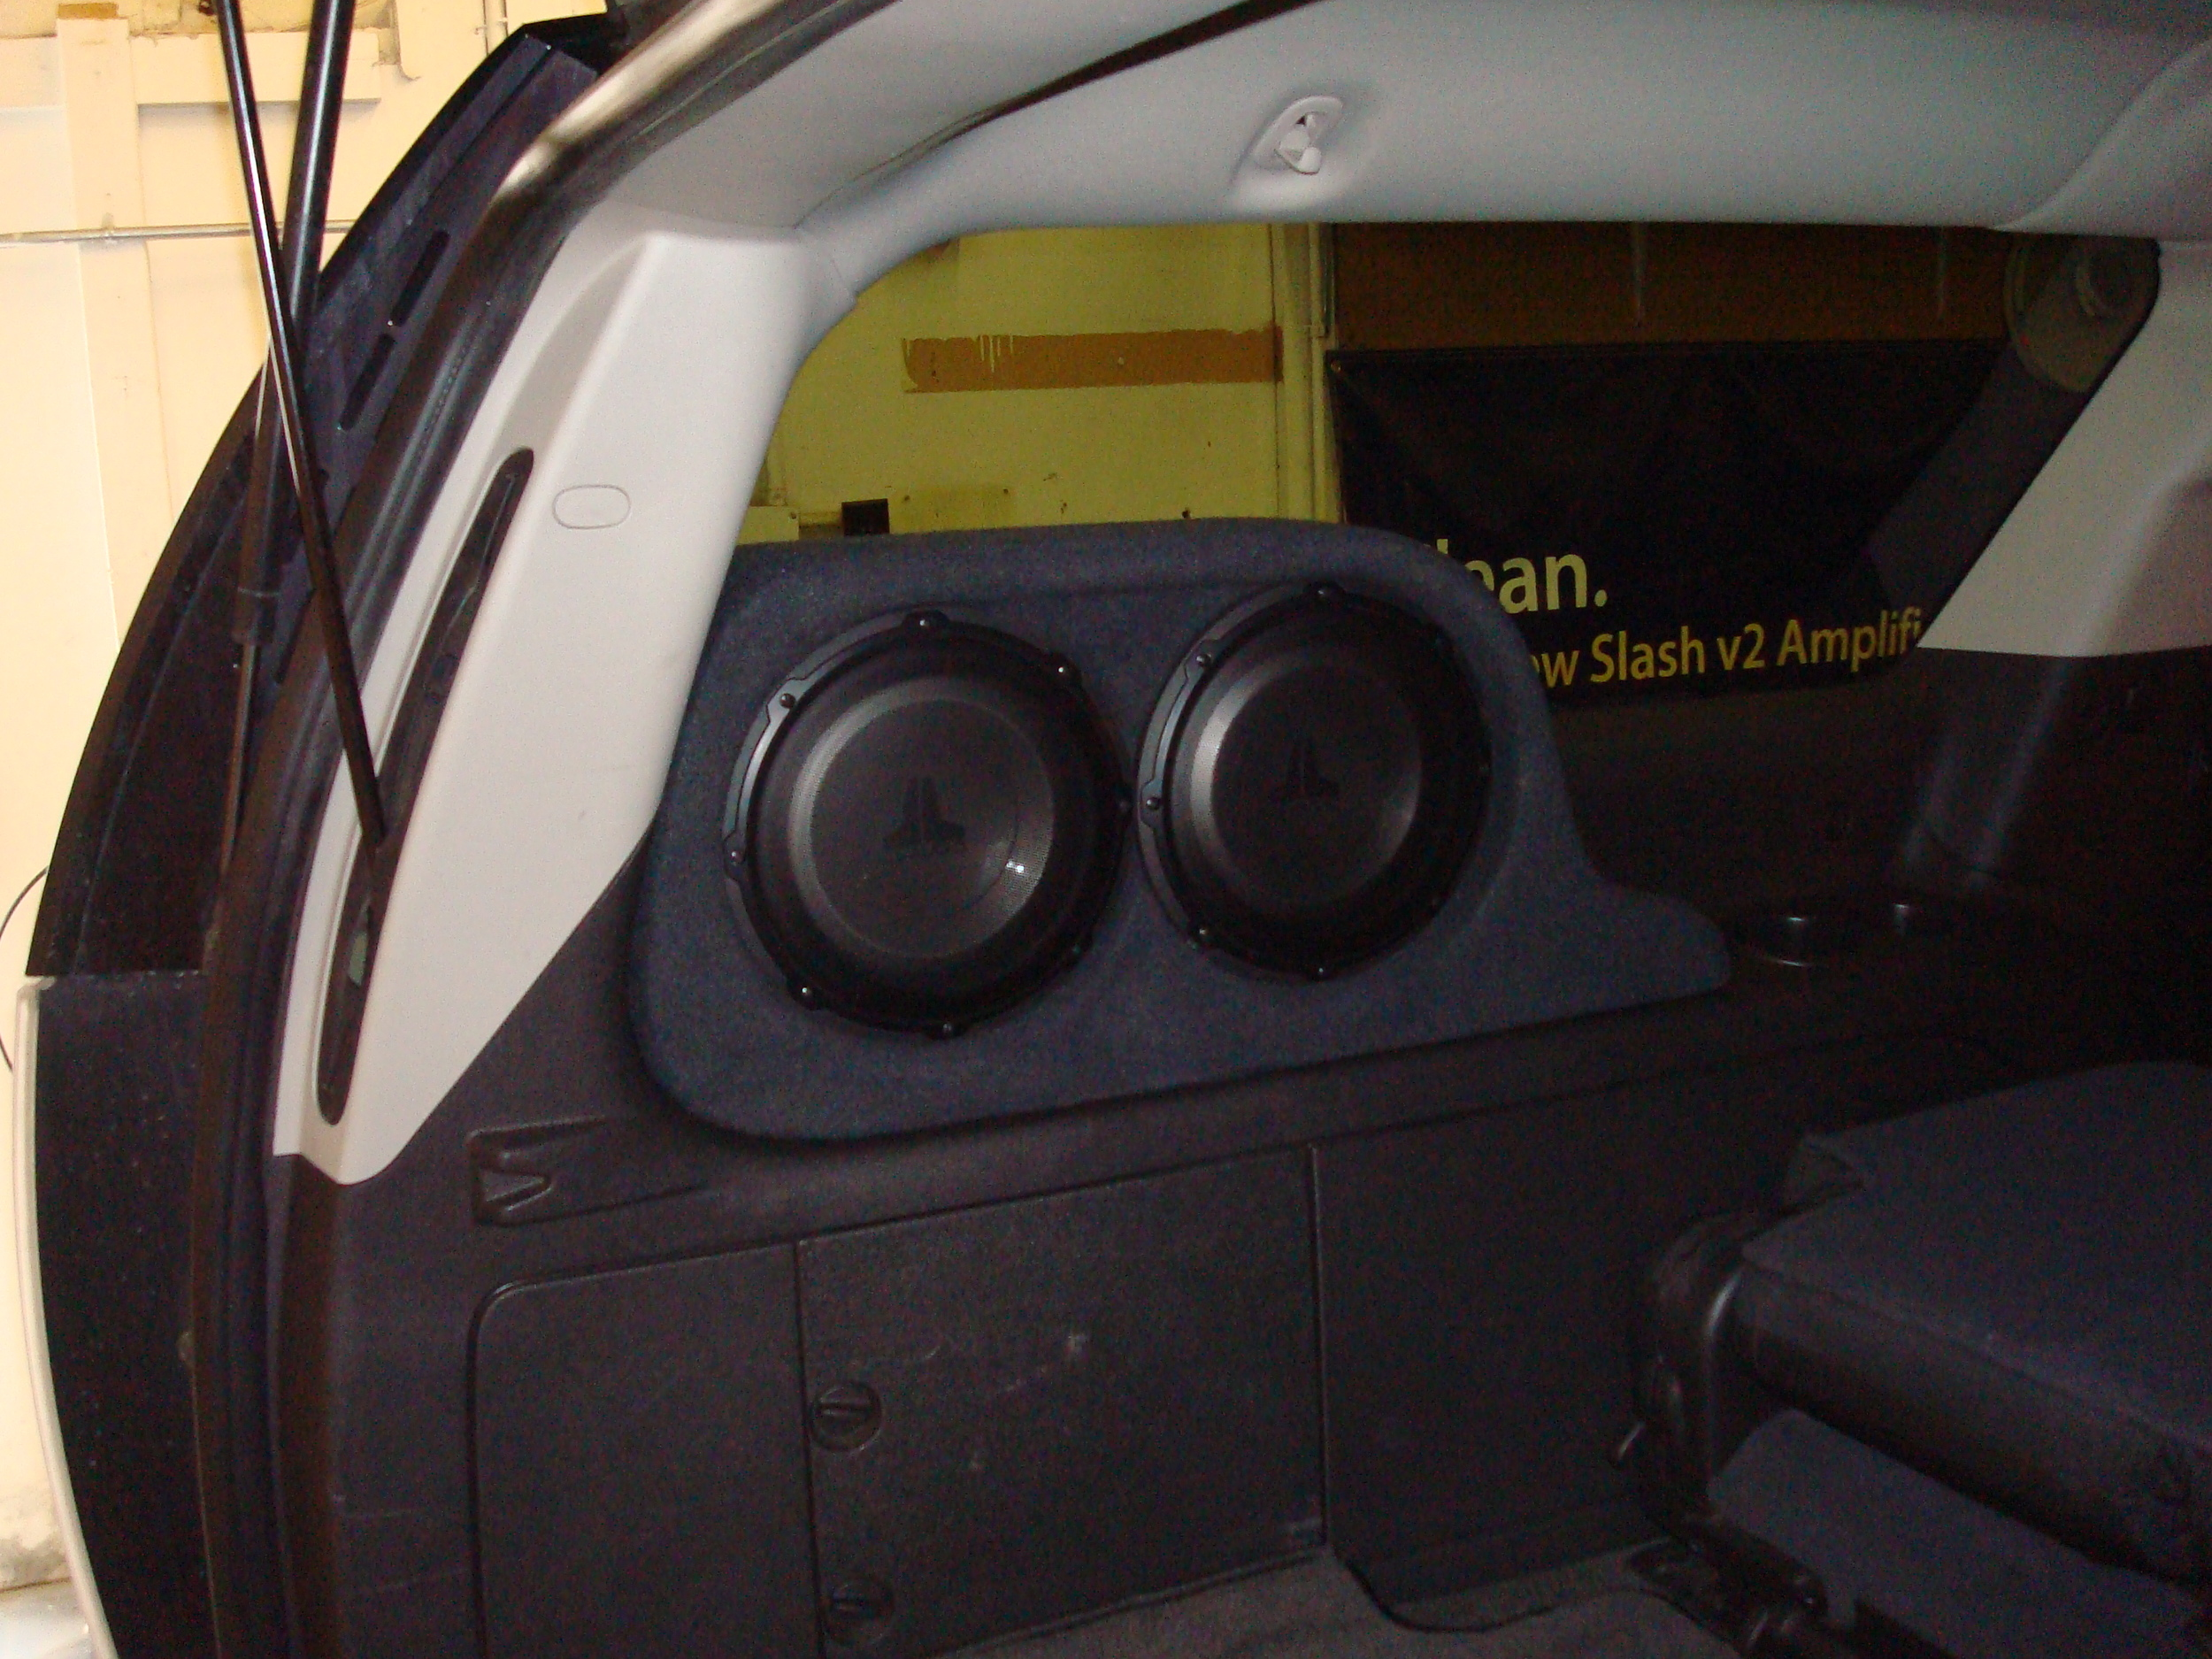 2007 Yukon Denali XL - JL Audio Stealthbox with (2) 10W1 subs.  Keeps the entire cargo area free.